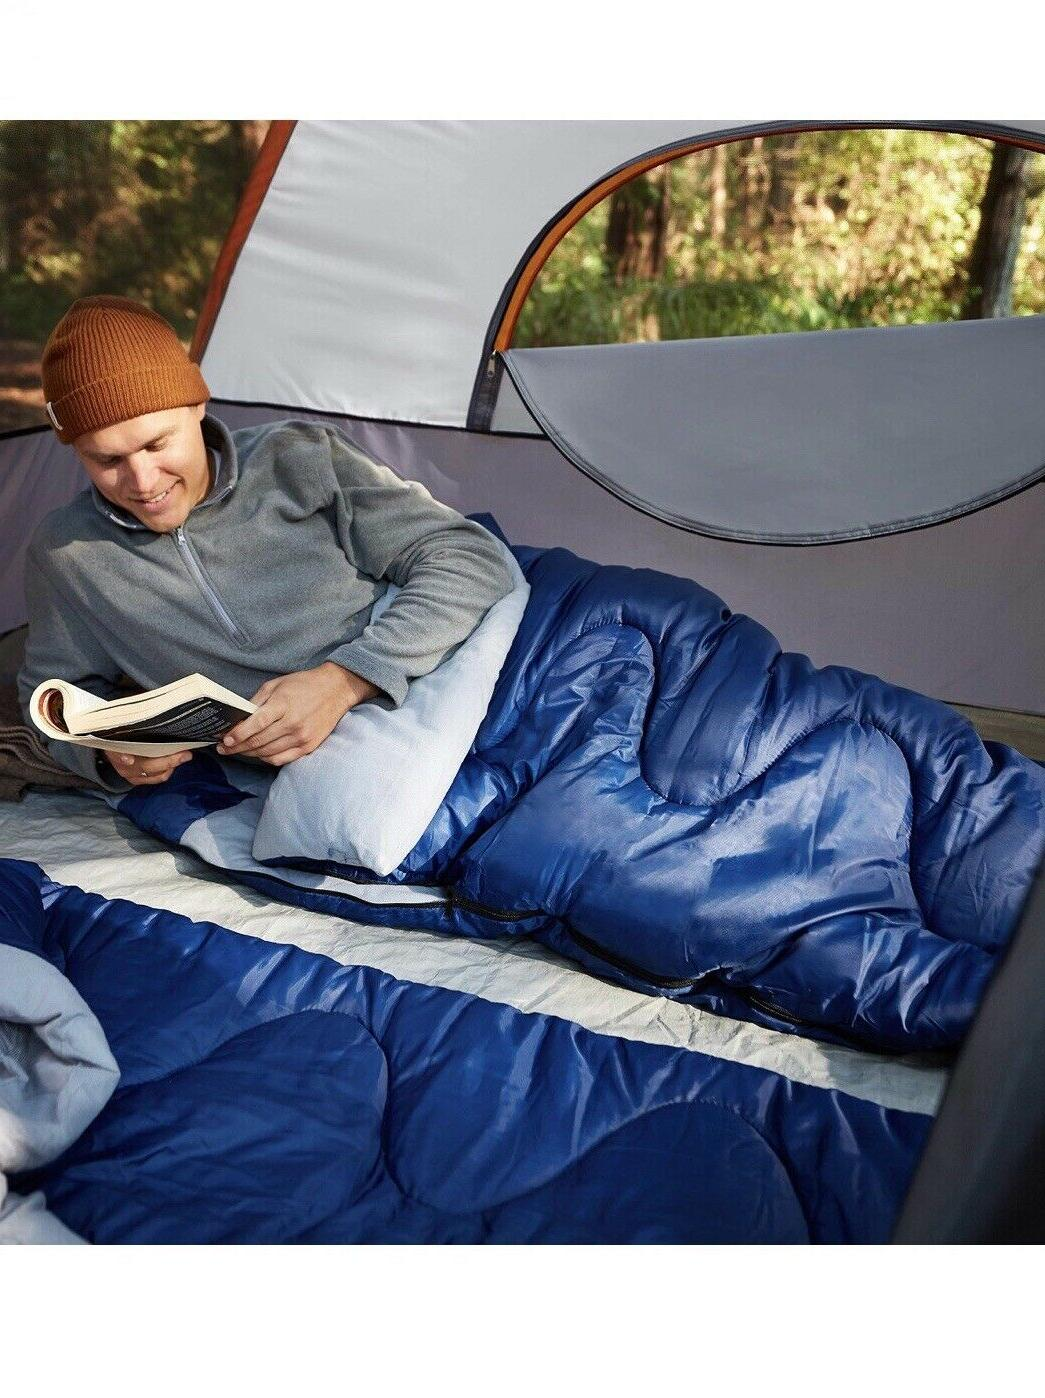 4 3 9' Camping Resistant